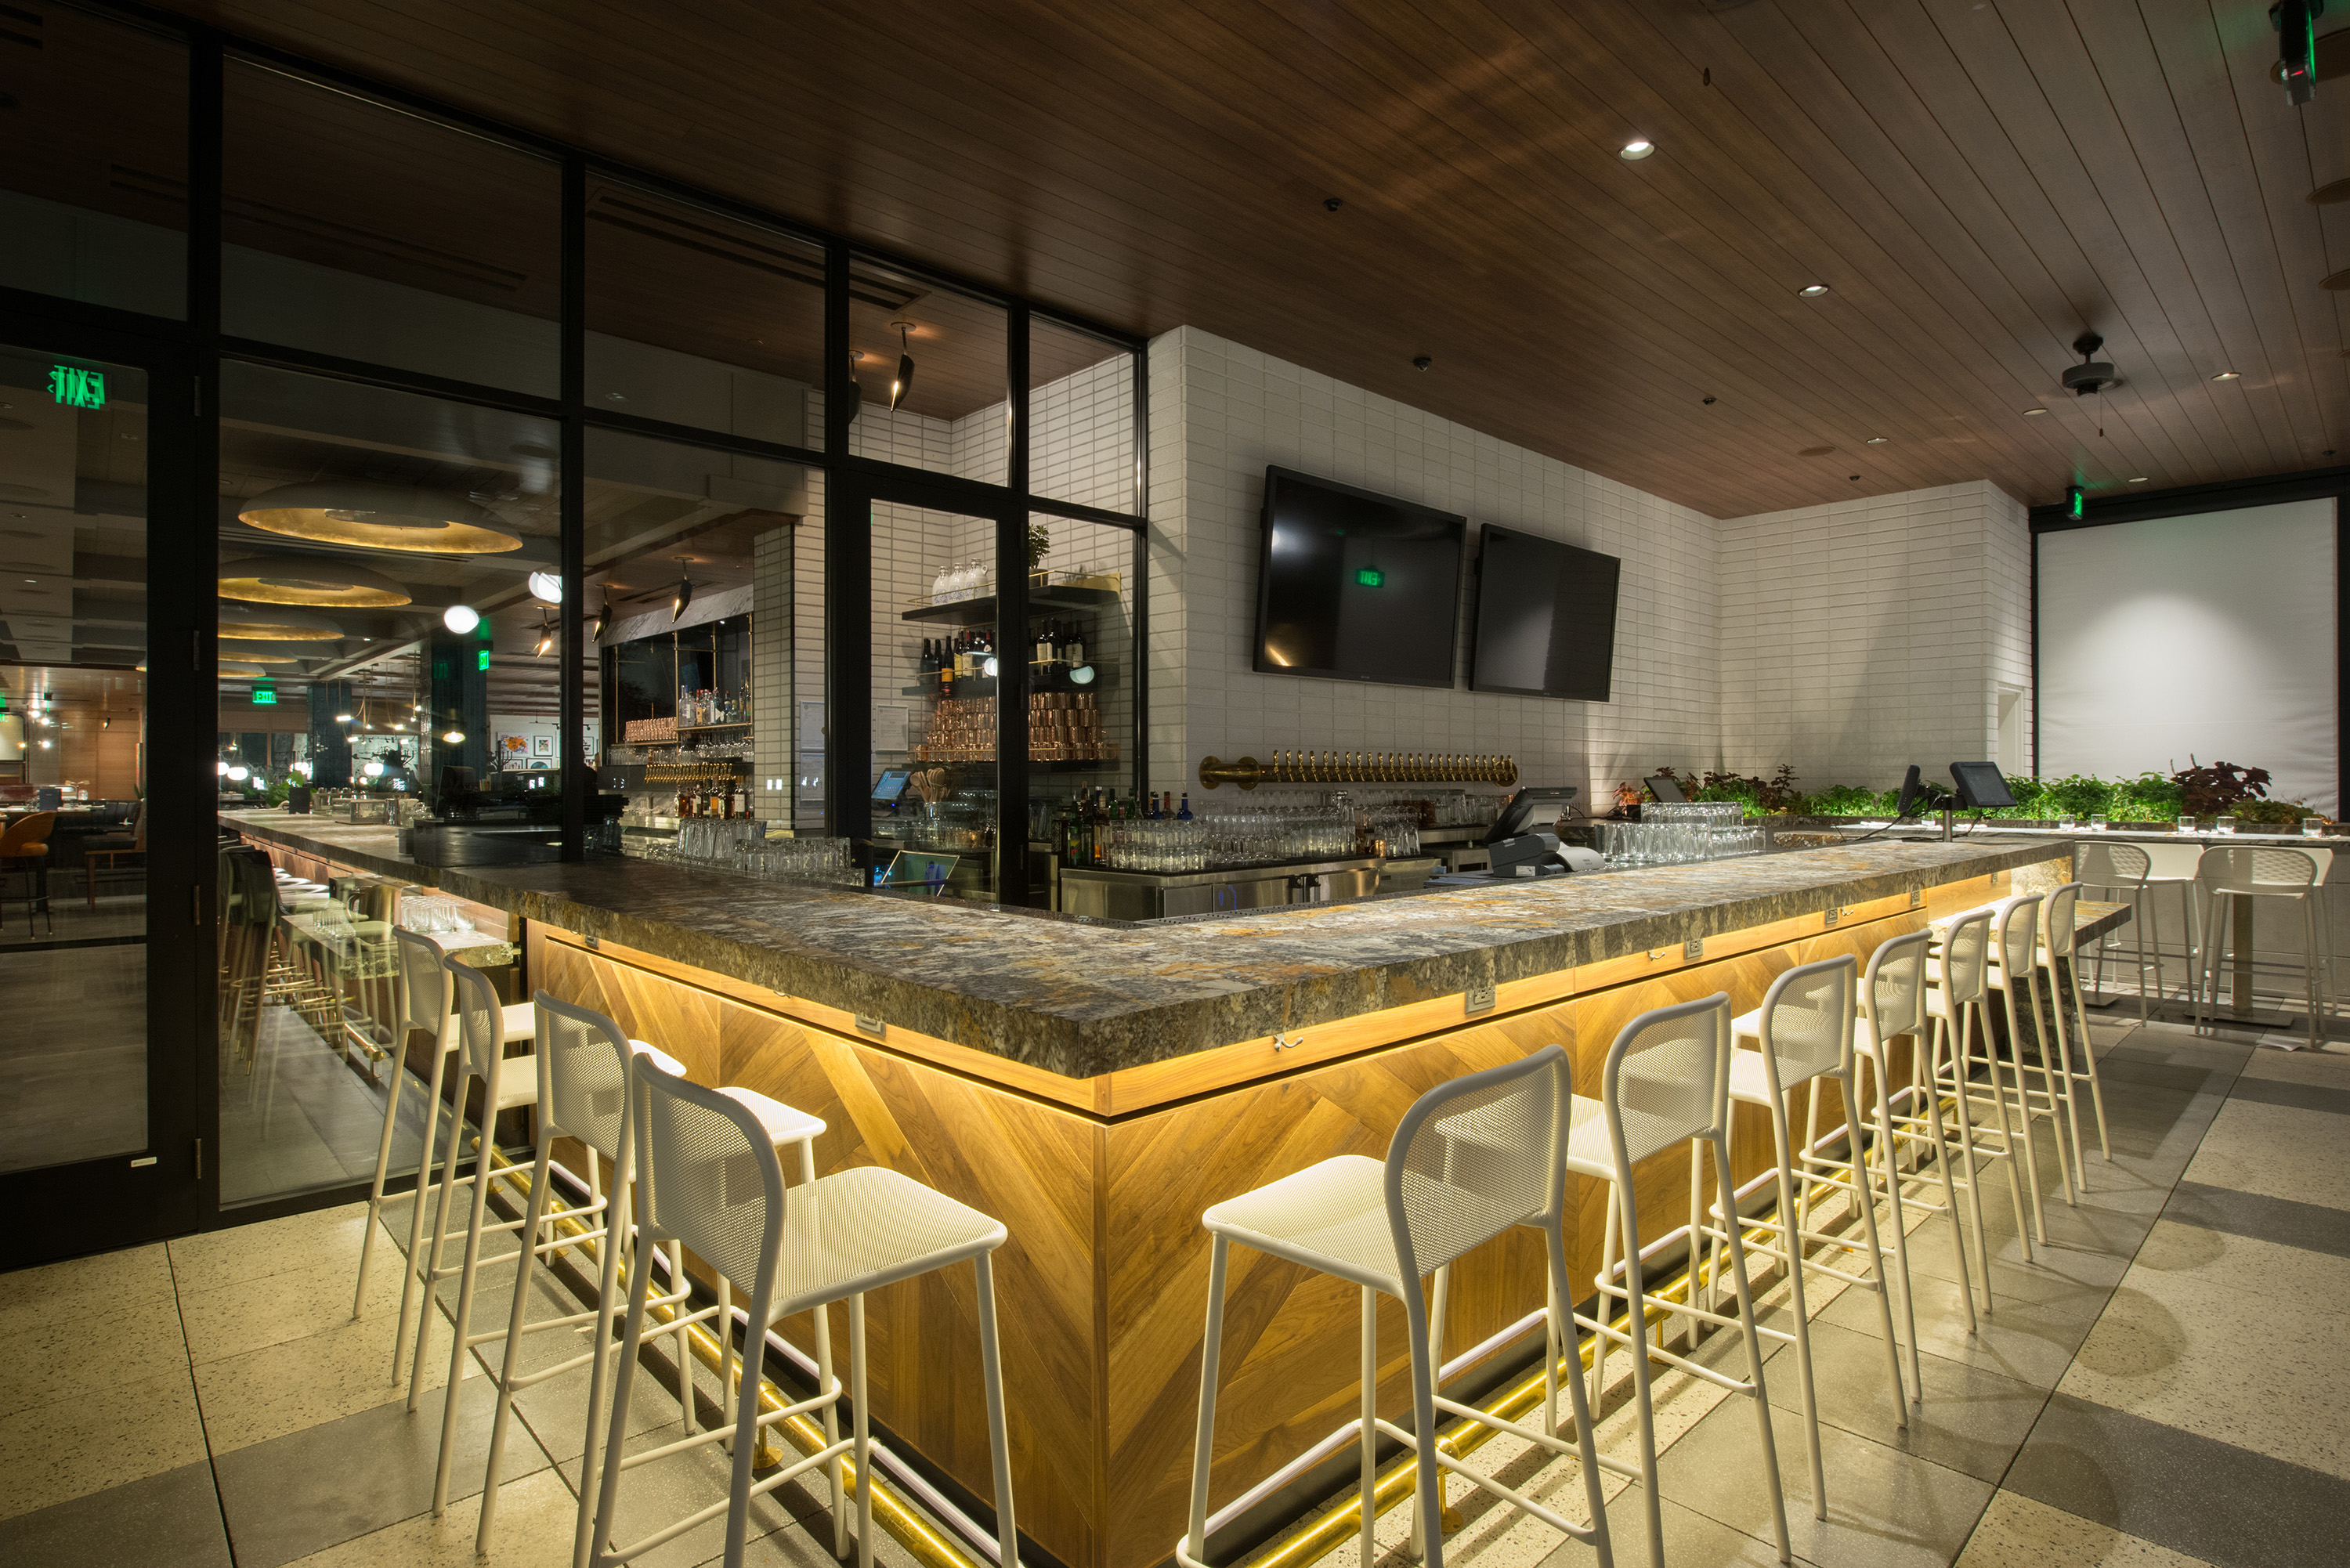 Earls Kitchen Bar Opens Today At The Prudential Center